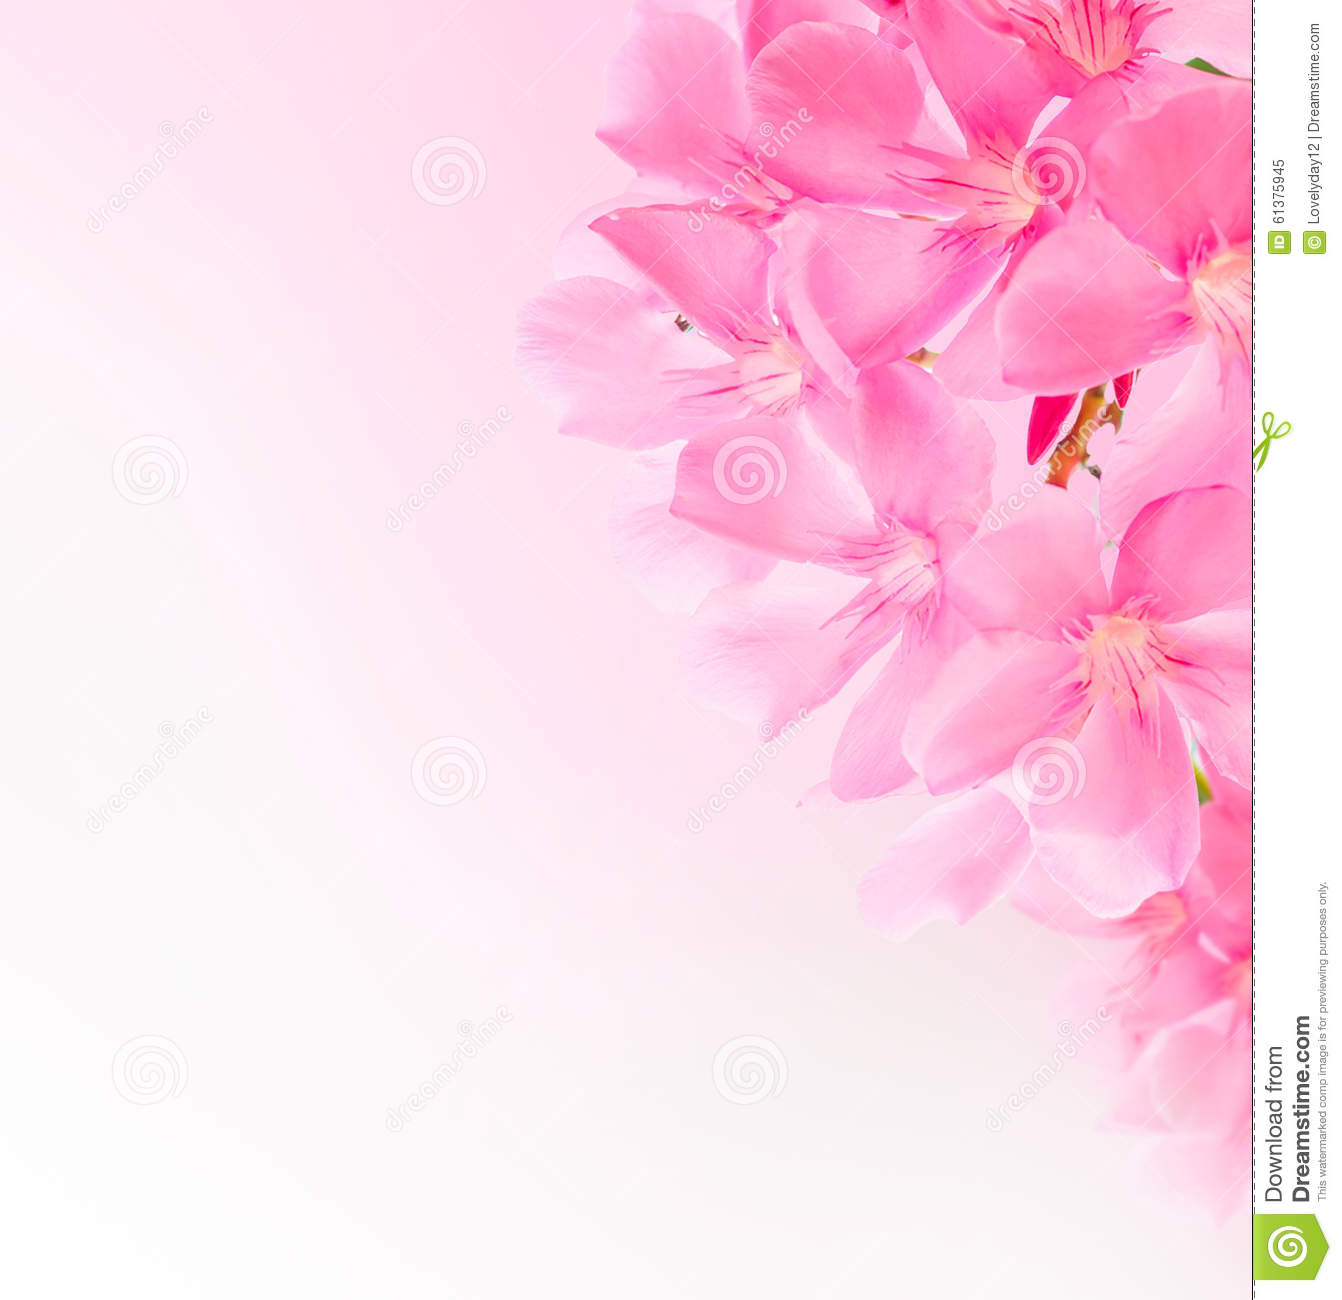 Free Ppt Backgrounds Desktop Wallpaper Flower Pink Lotus: Spring Border Or Background With Pink Blossom Stock Photo